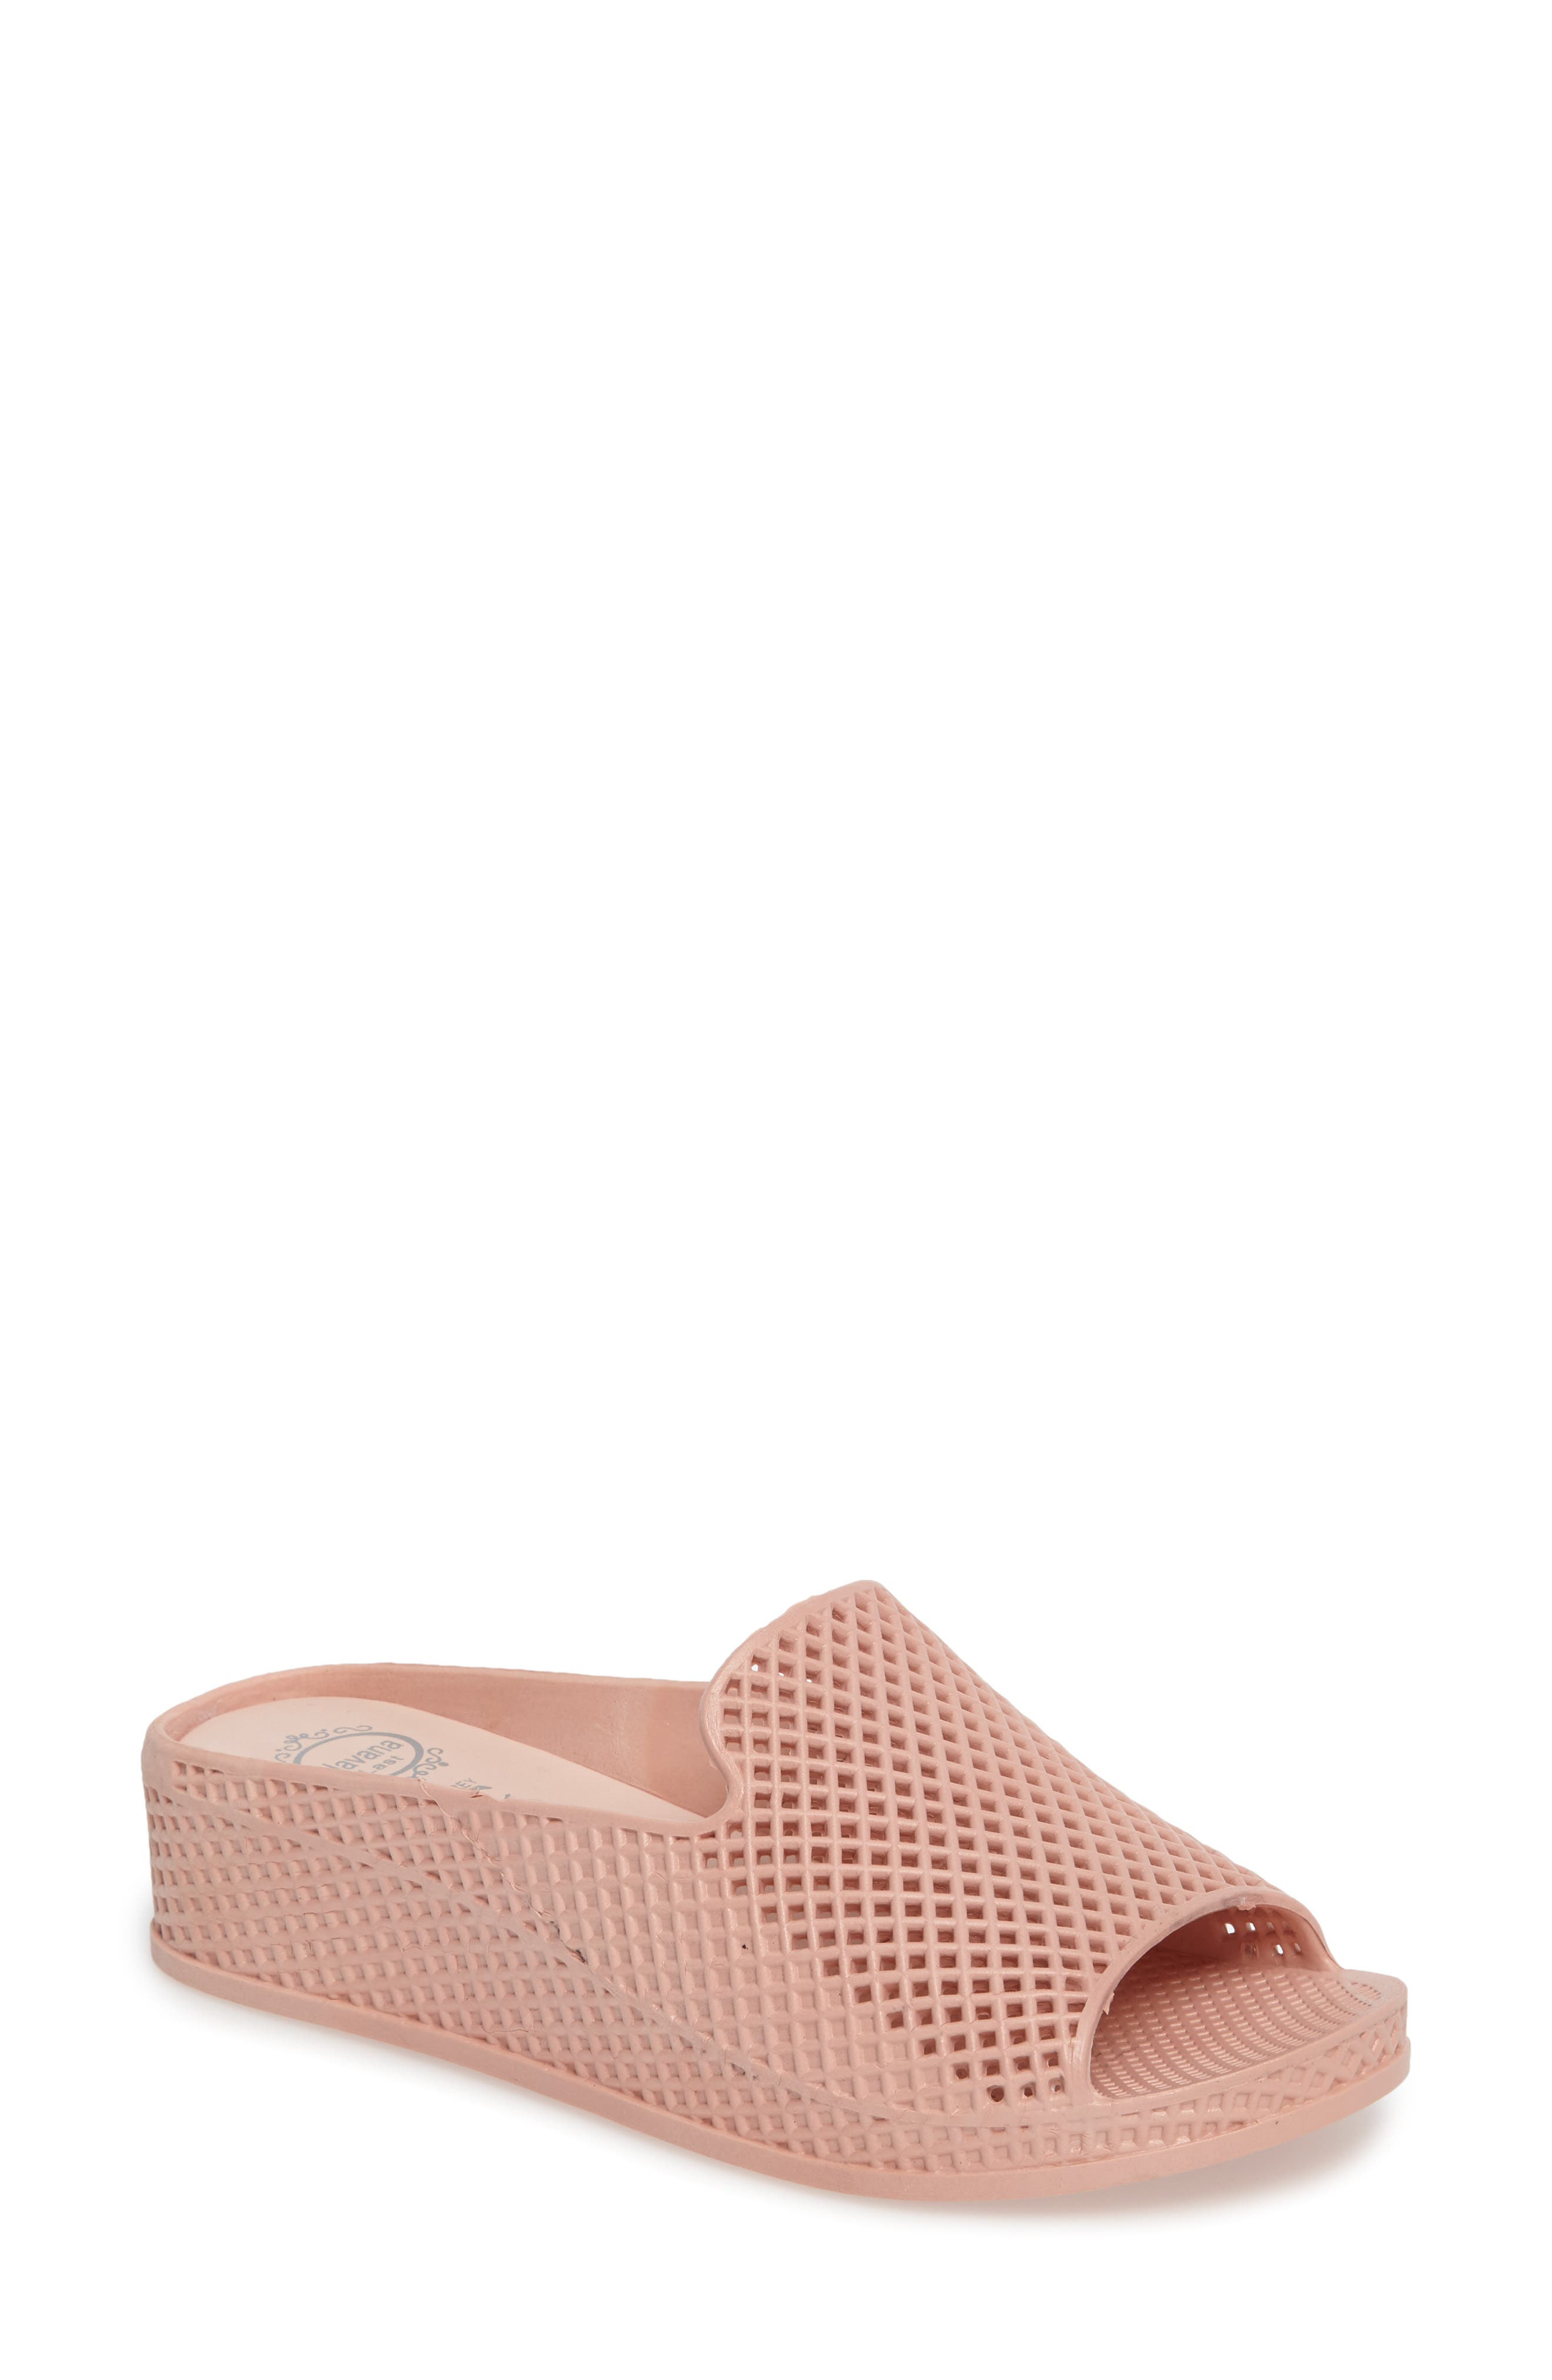 Jeffrey Campbell Fling 2 Sandal (Women)